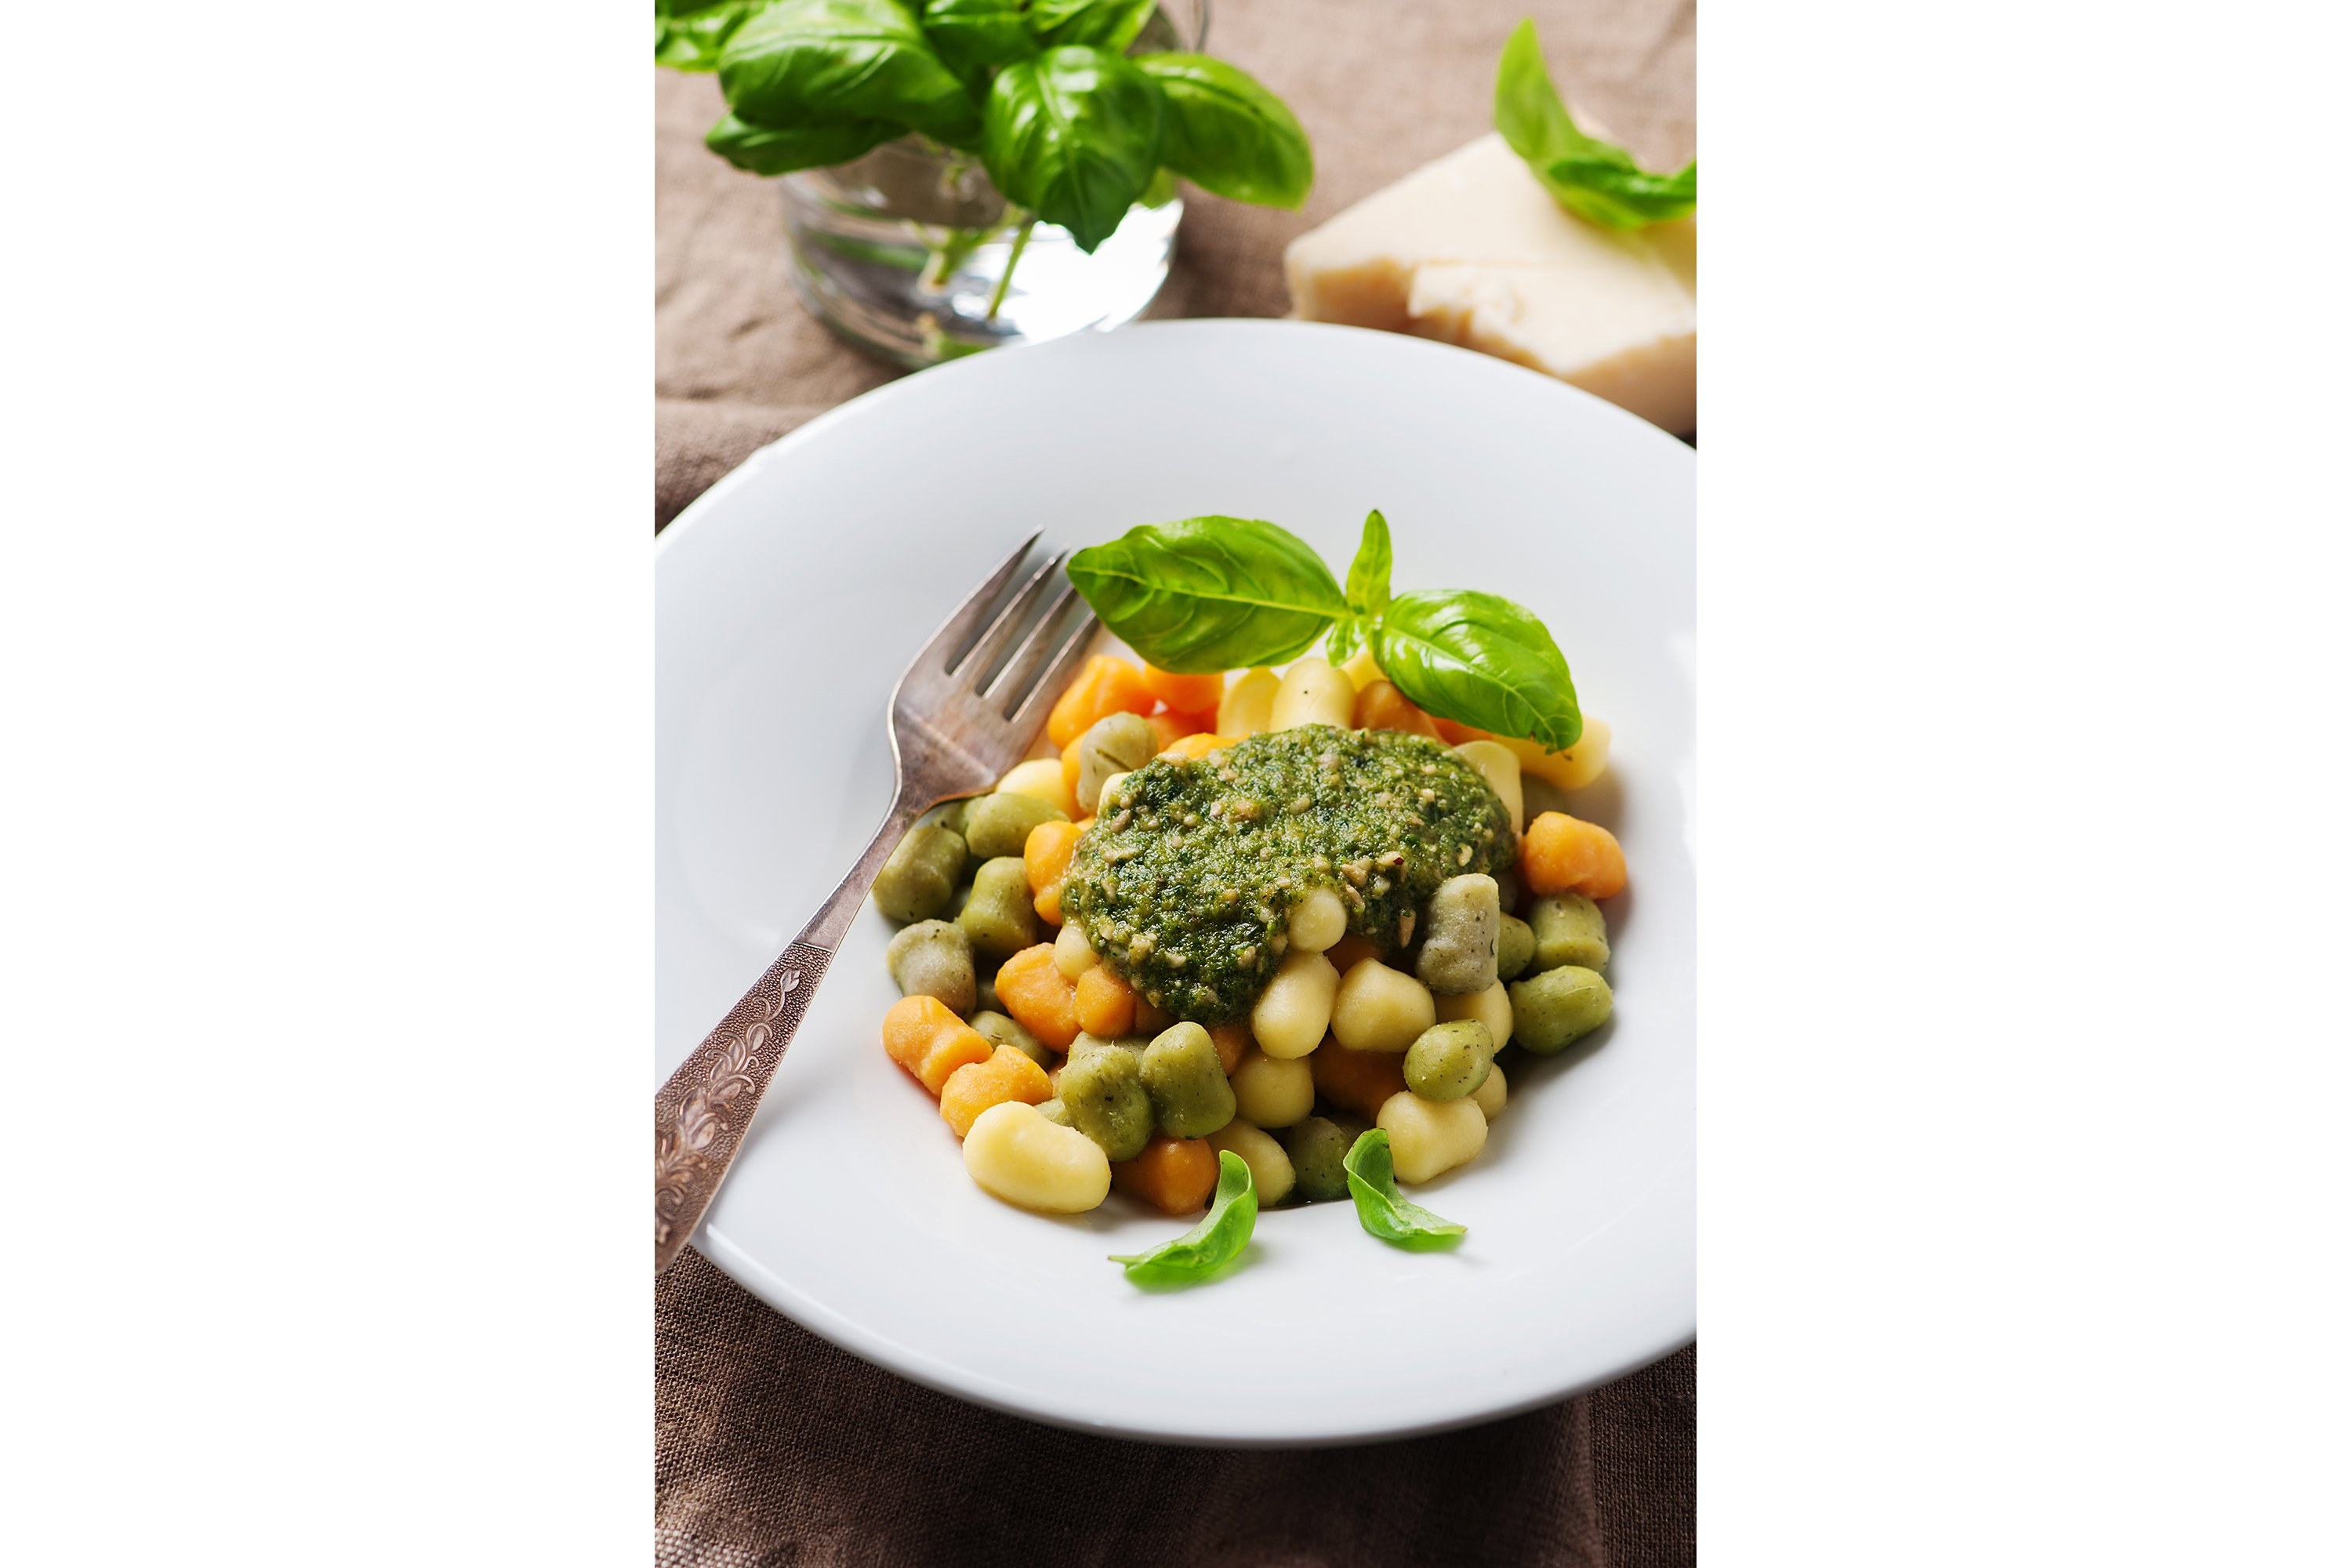 Colored gnocchi with pesto, selective focus example image 1